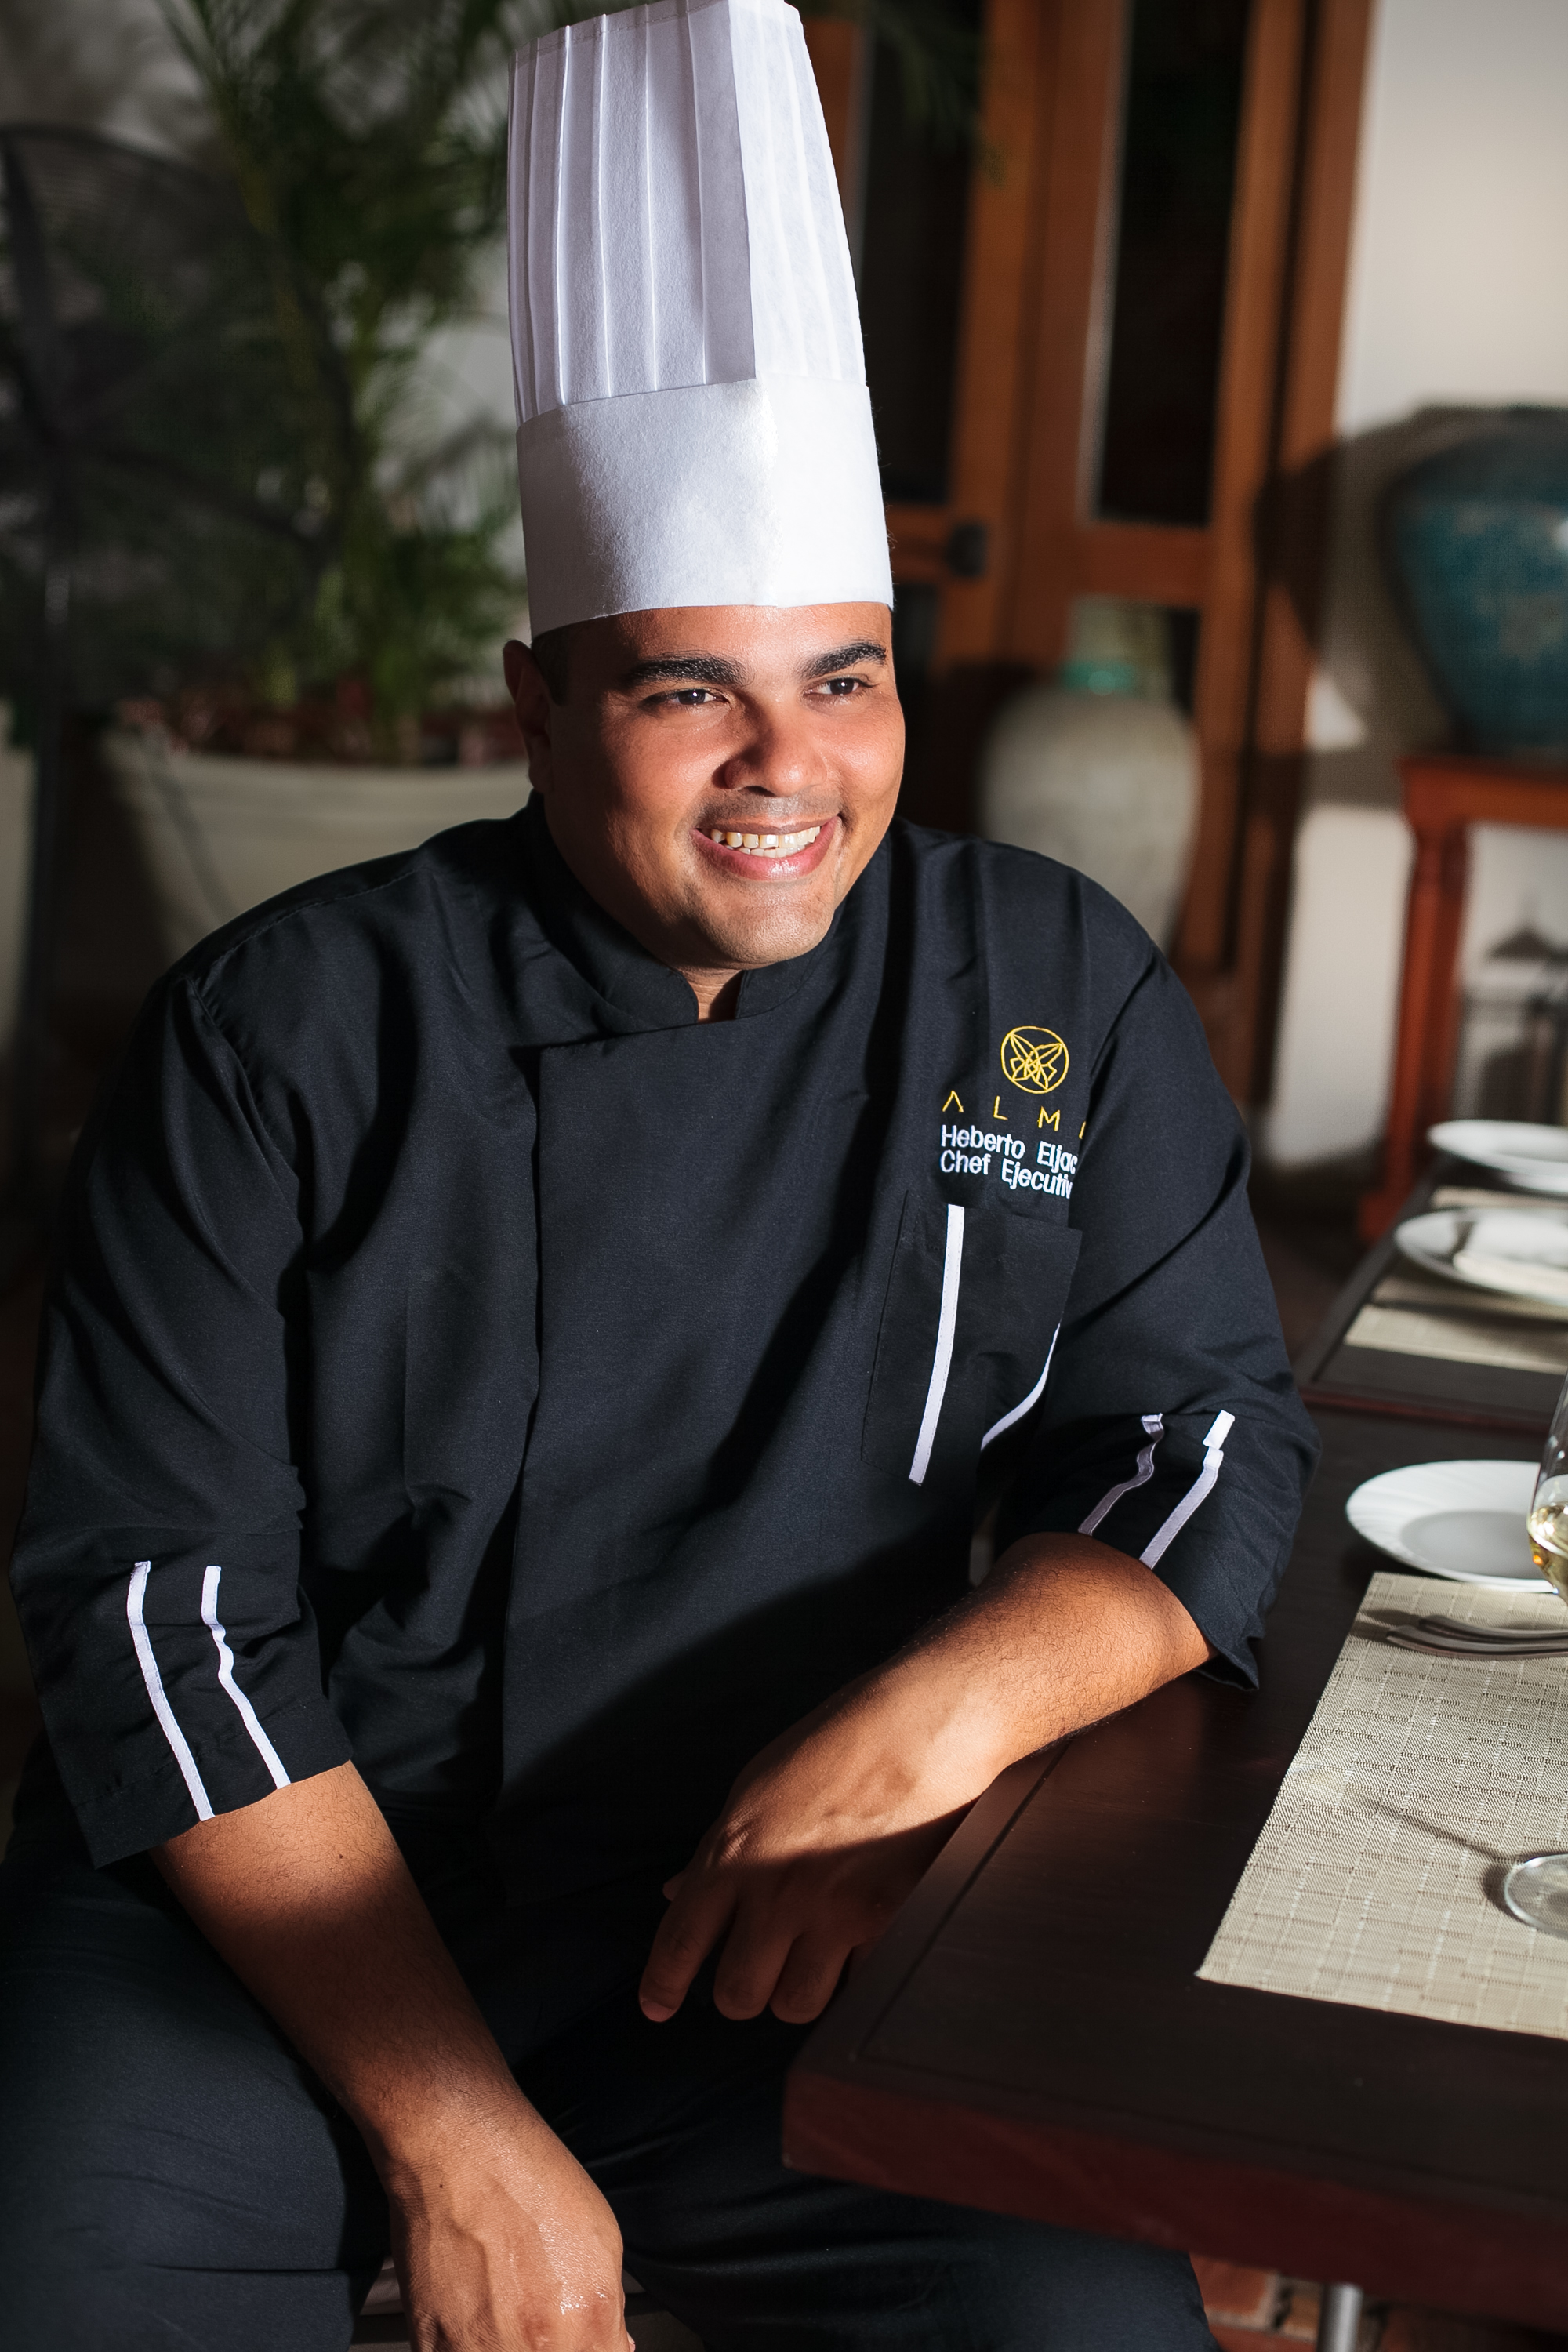 Executive Chef Heberto Eljach